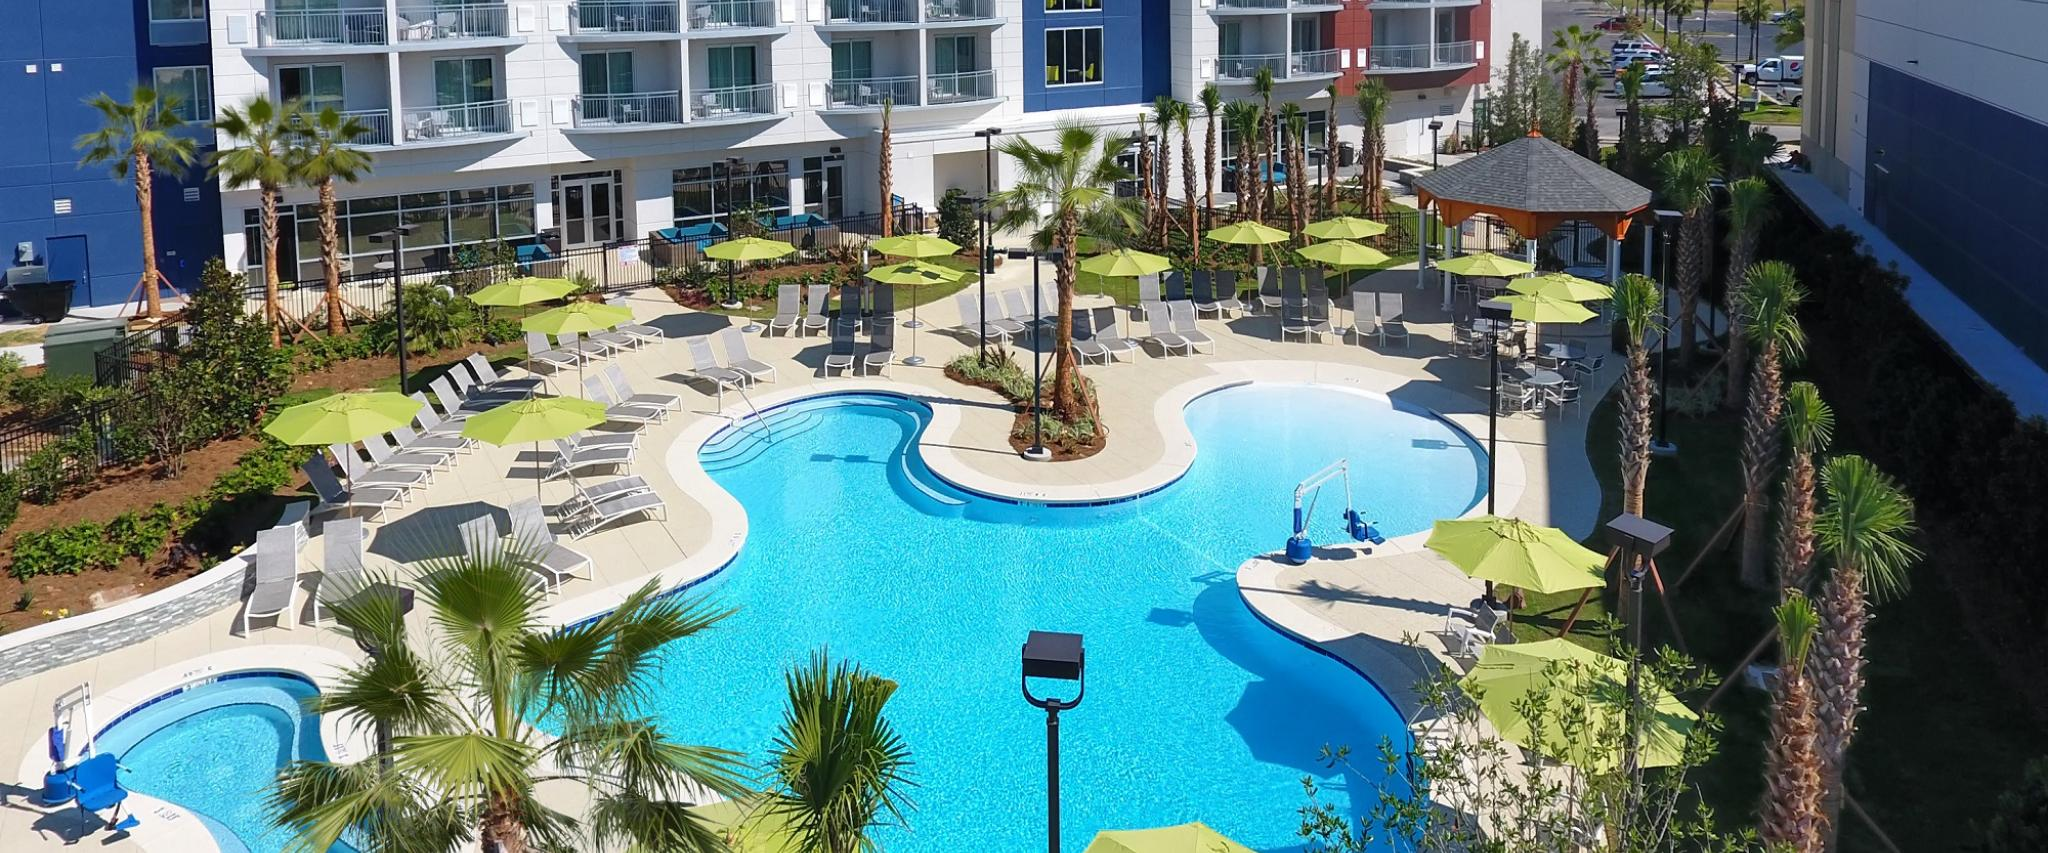 Pools at Springhill Suites at The Wharf